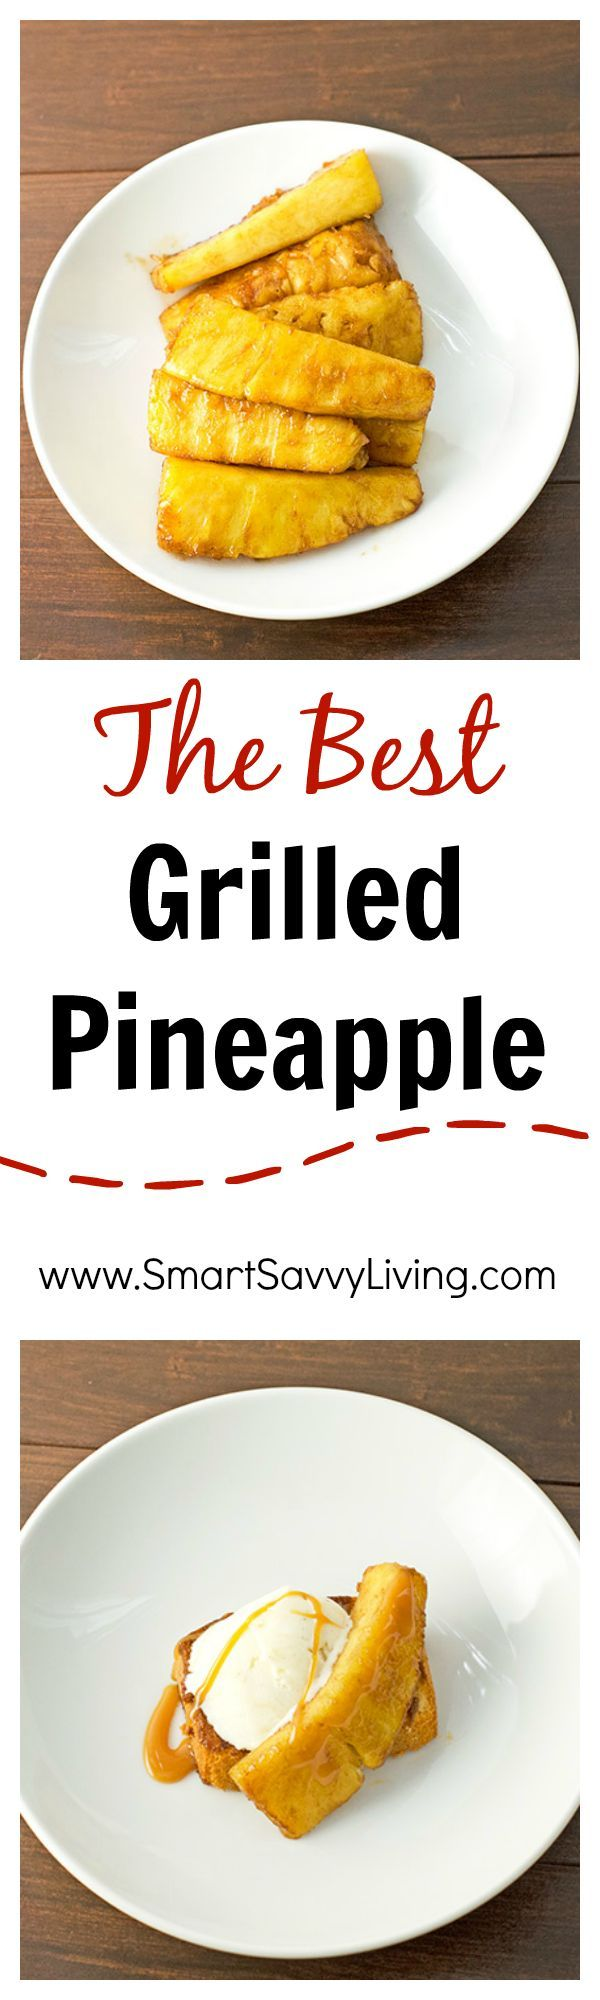 Recipe: How to Make the Best Grilled Pineapple